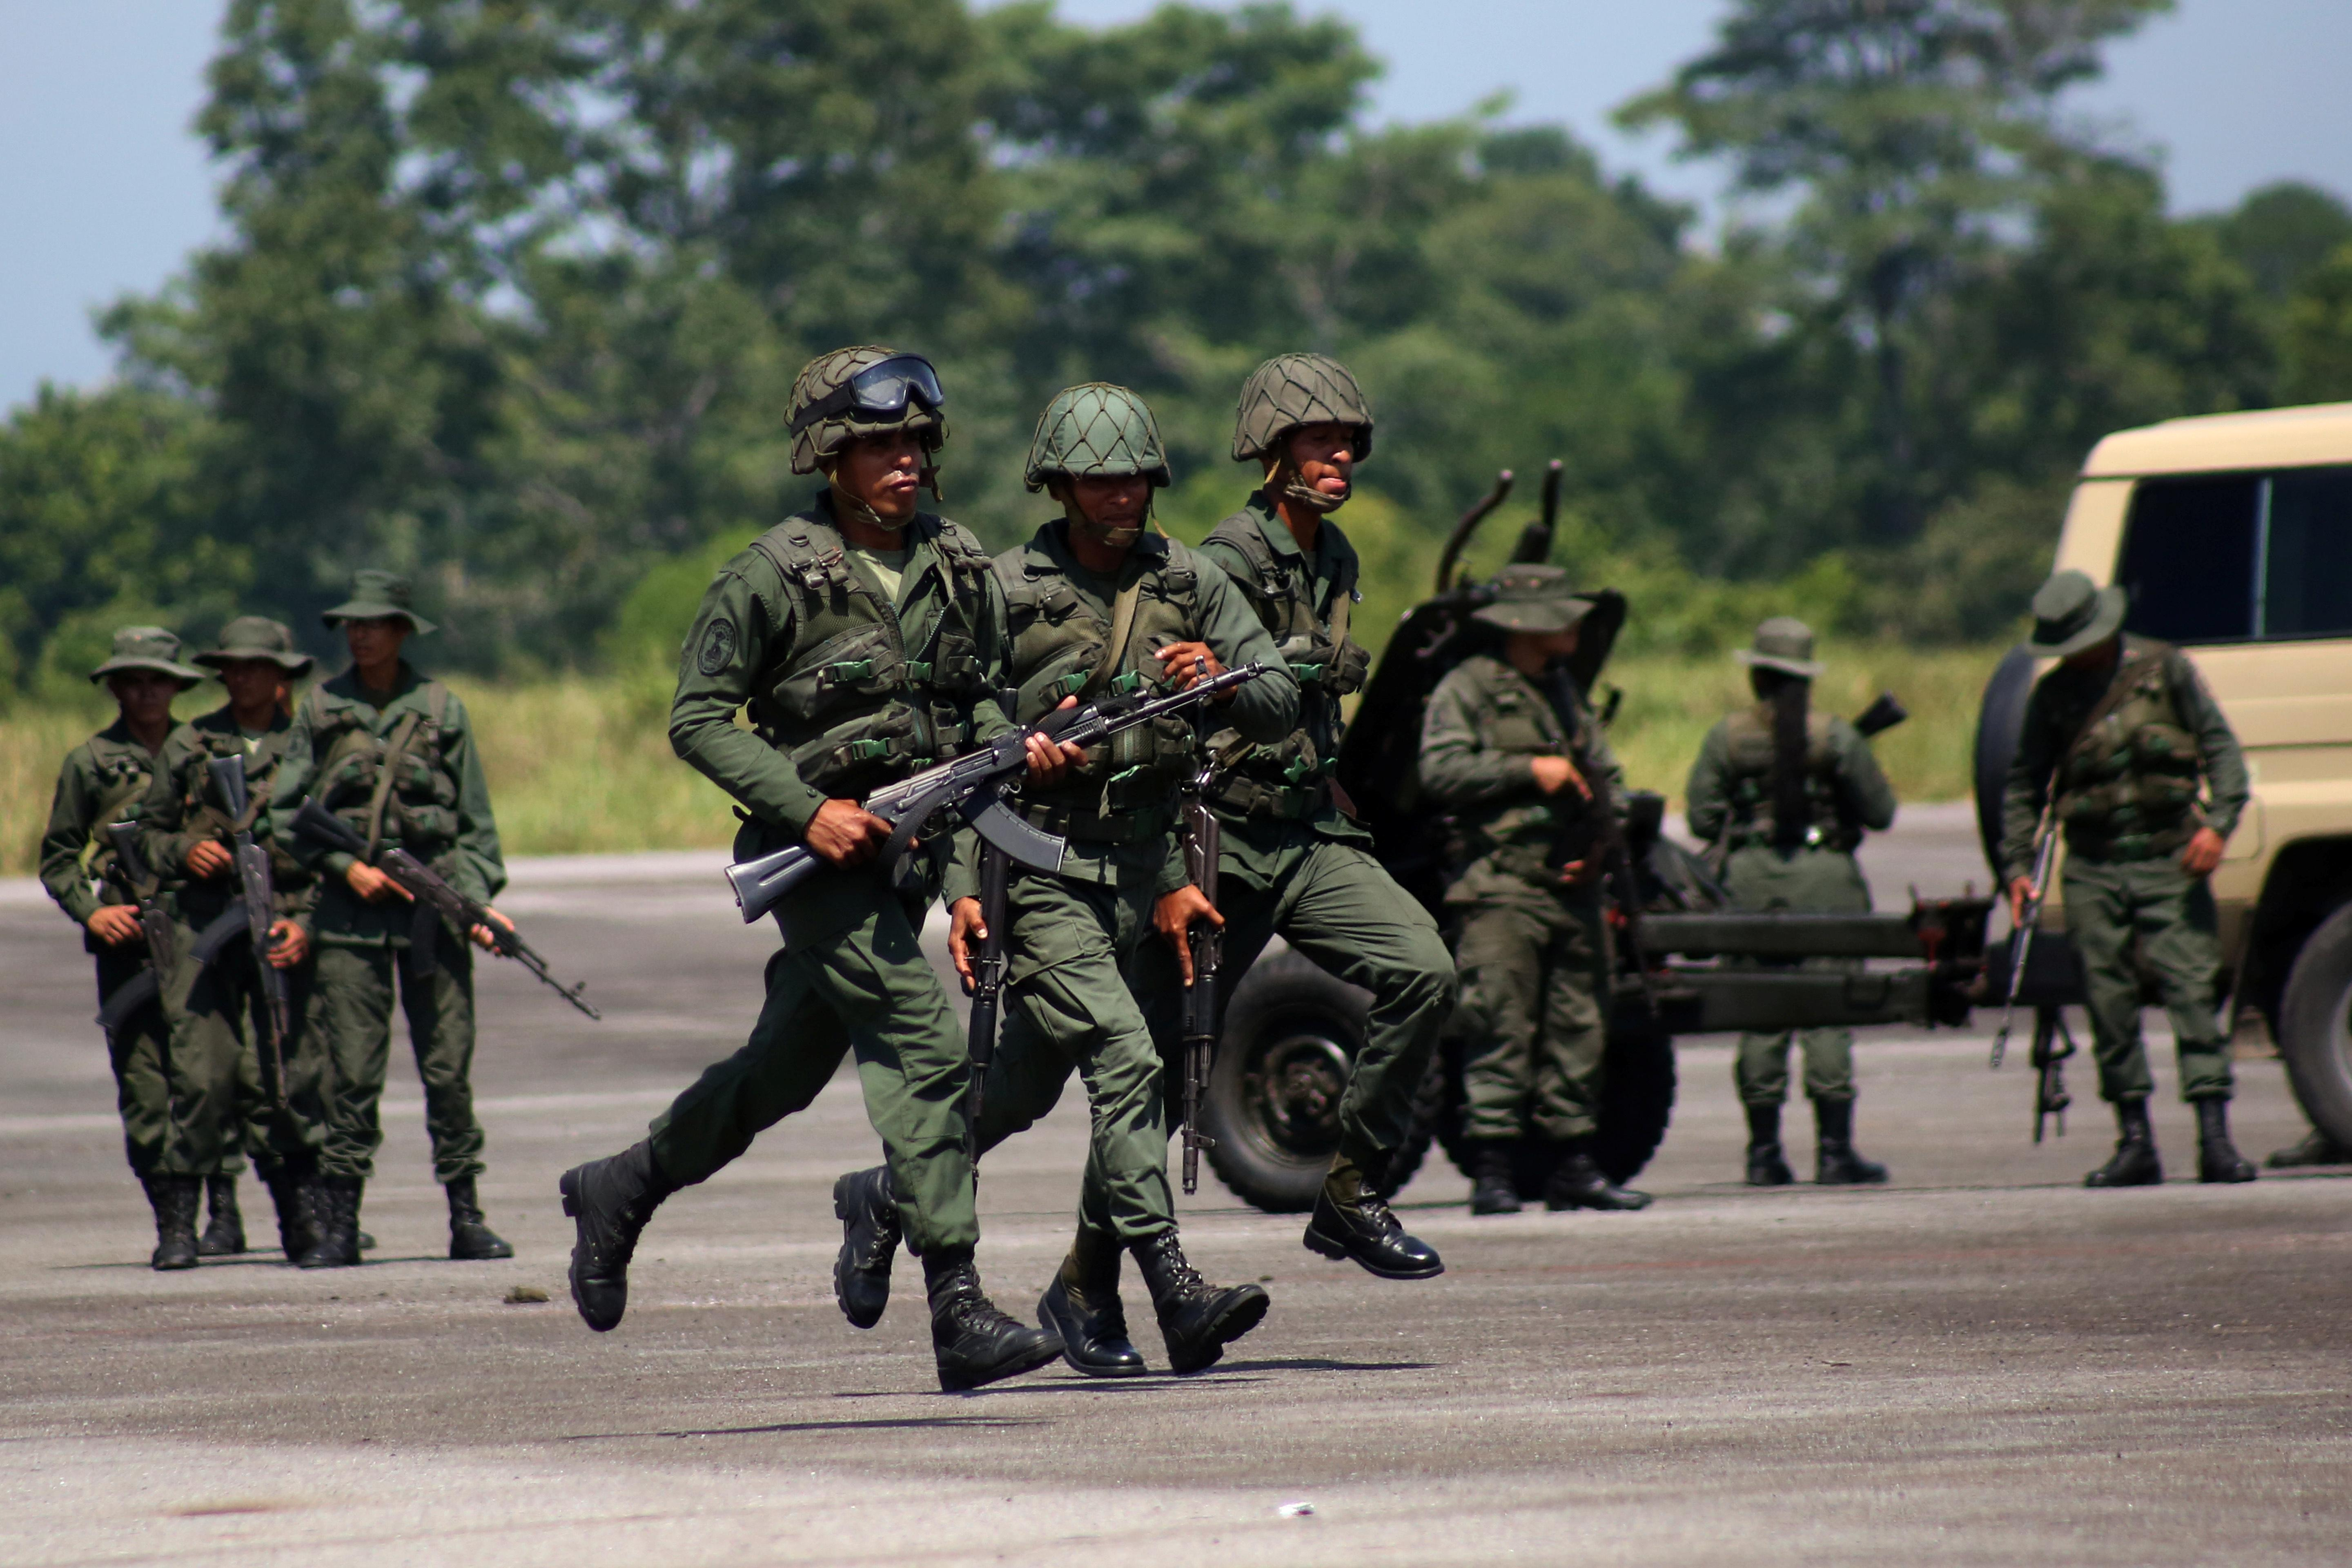 Colombia's armed forces on alert over Venezuela military exercises